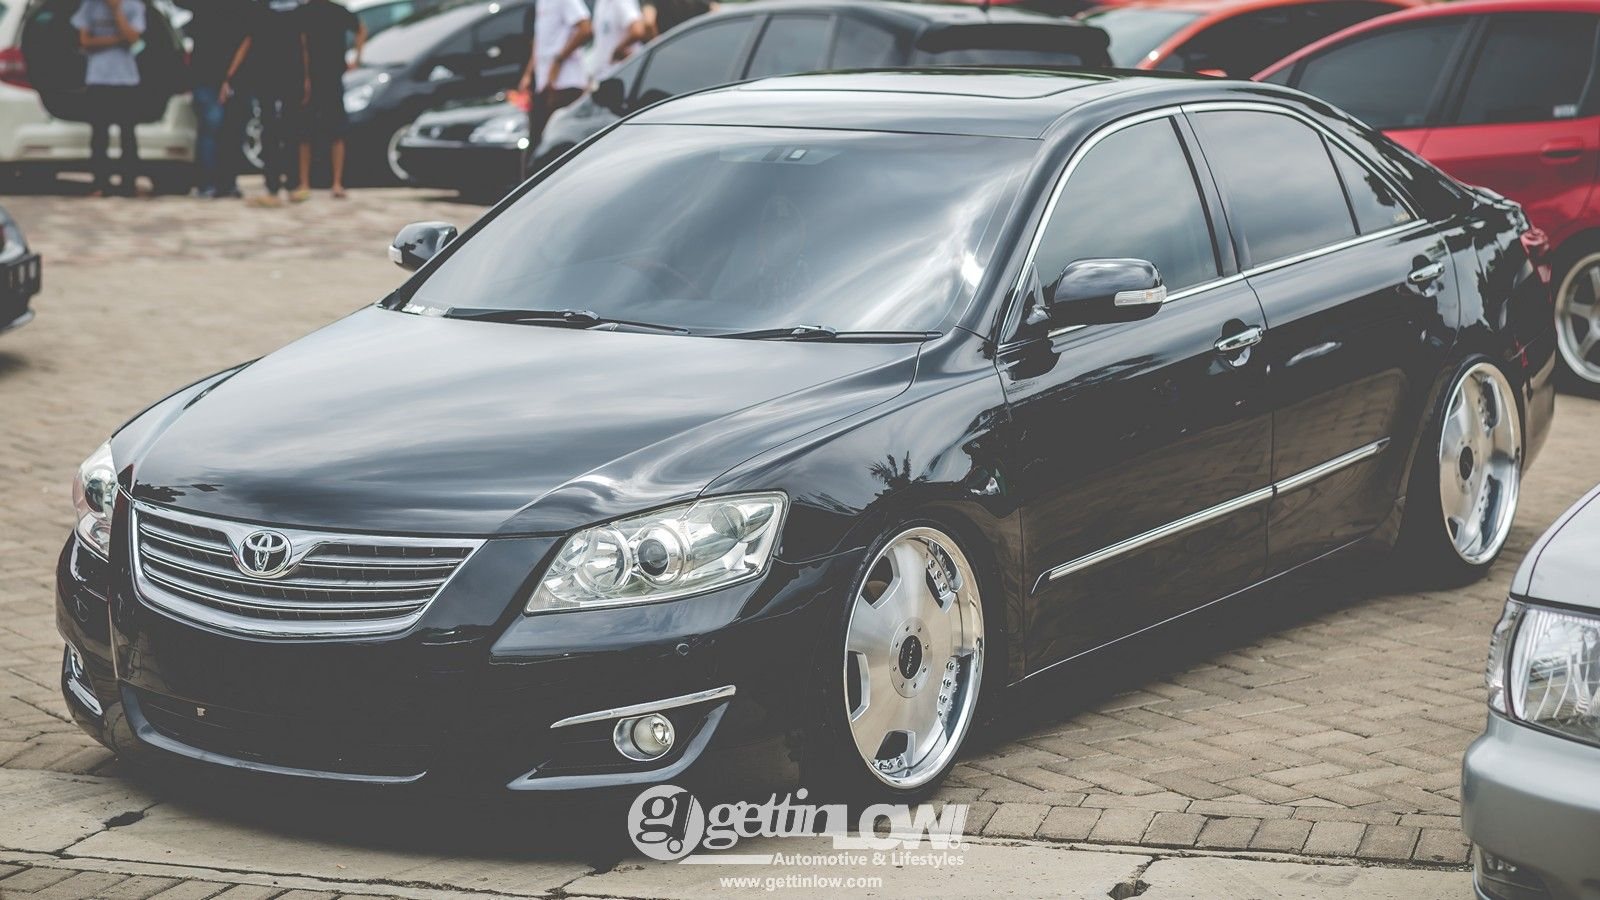 Toyota Camry On Marchfest 2017 More Photos Http Www Gettinlow Com Event Coverage Marchfest 2017 Axc Summarec Toyota Camry Aksesoris Mobil Modifikasi Mobil